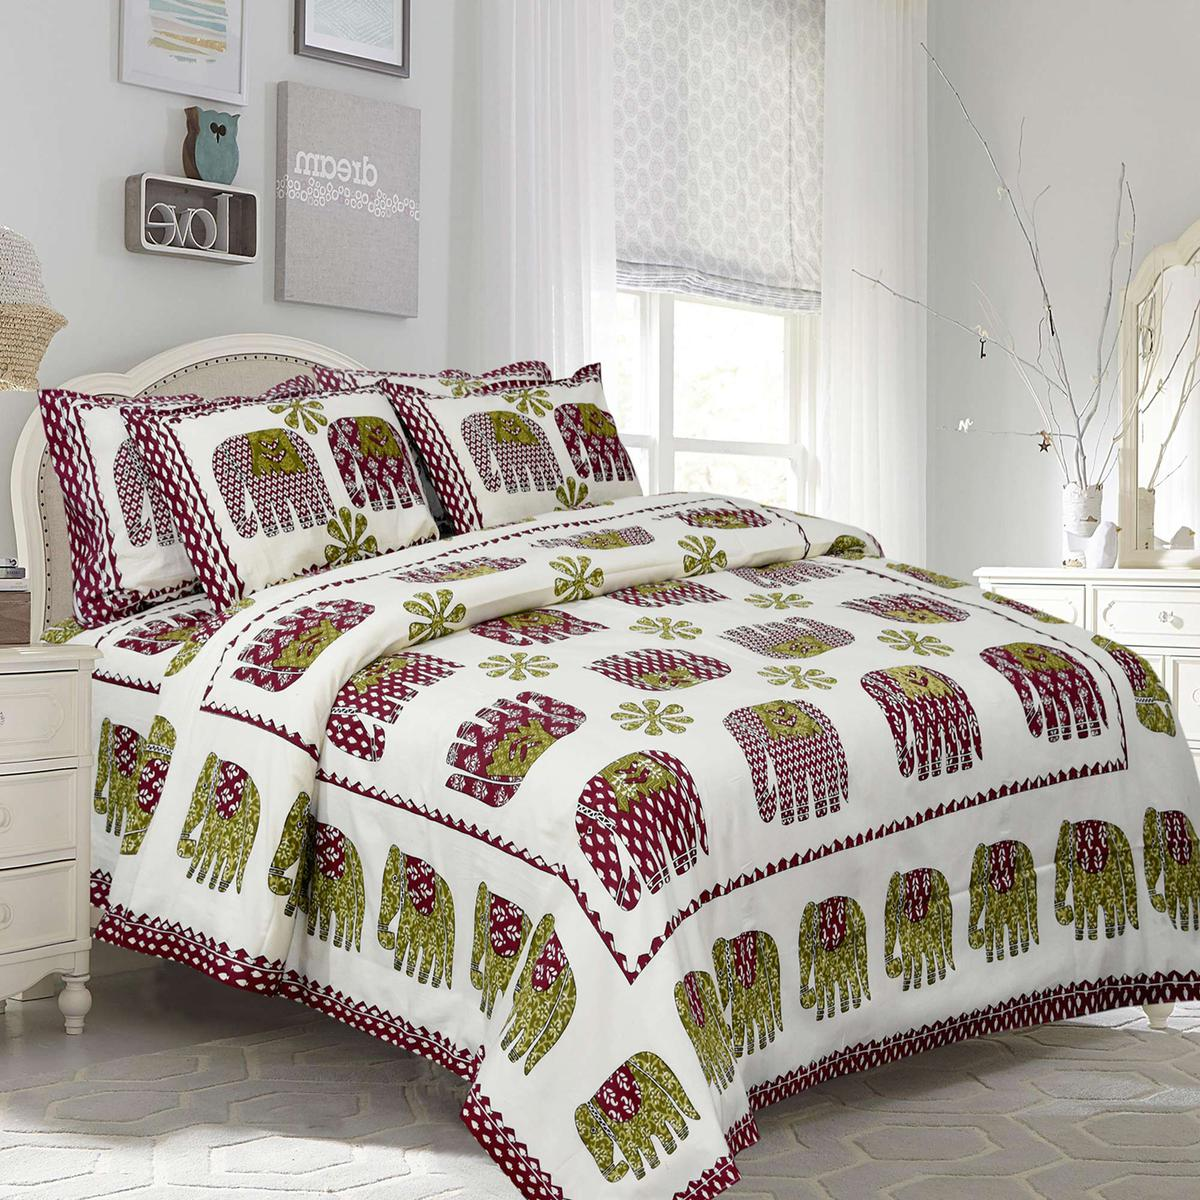 Amazing White-Maroon Colored Elephant Printed Pure Cotton Double Bedsheet With Pillow Cover